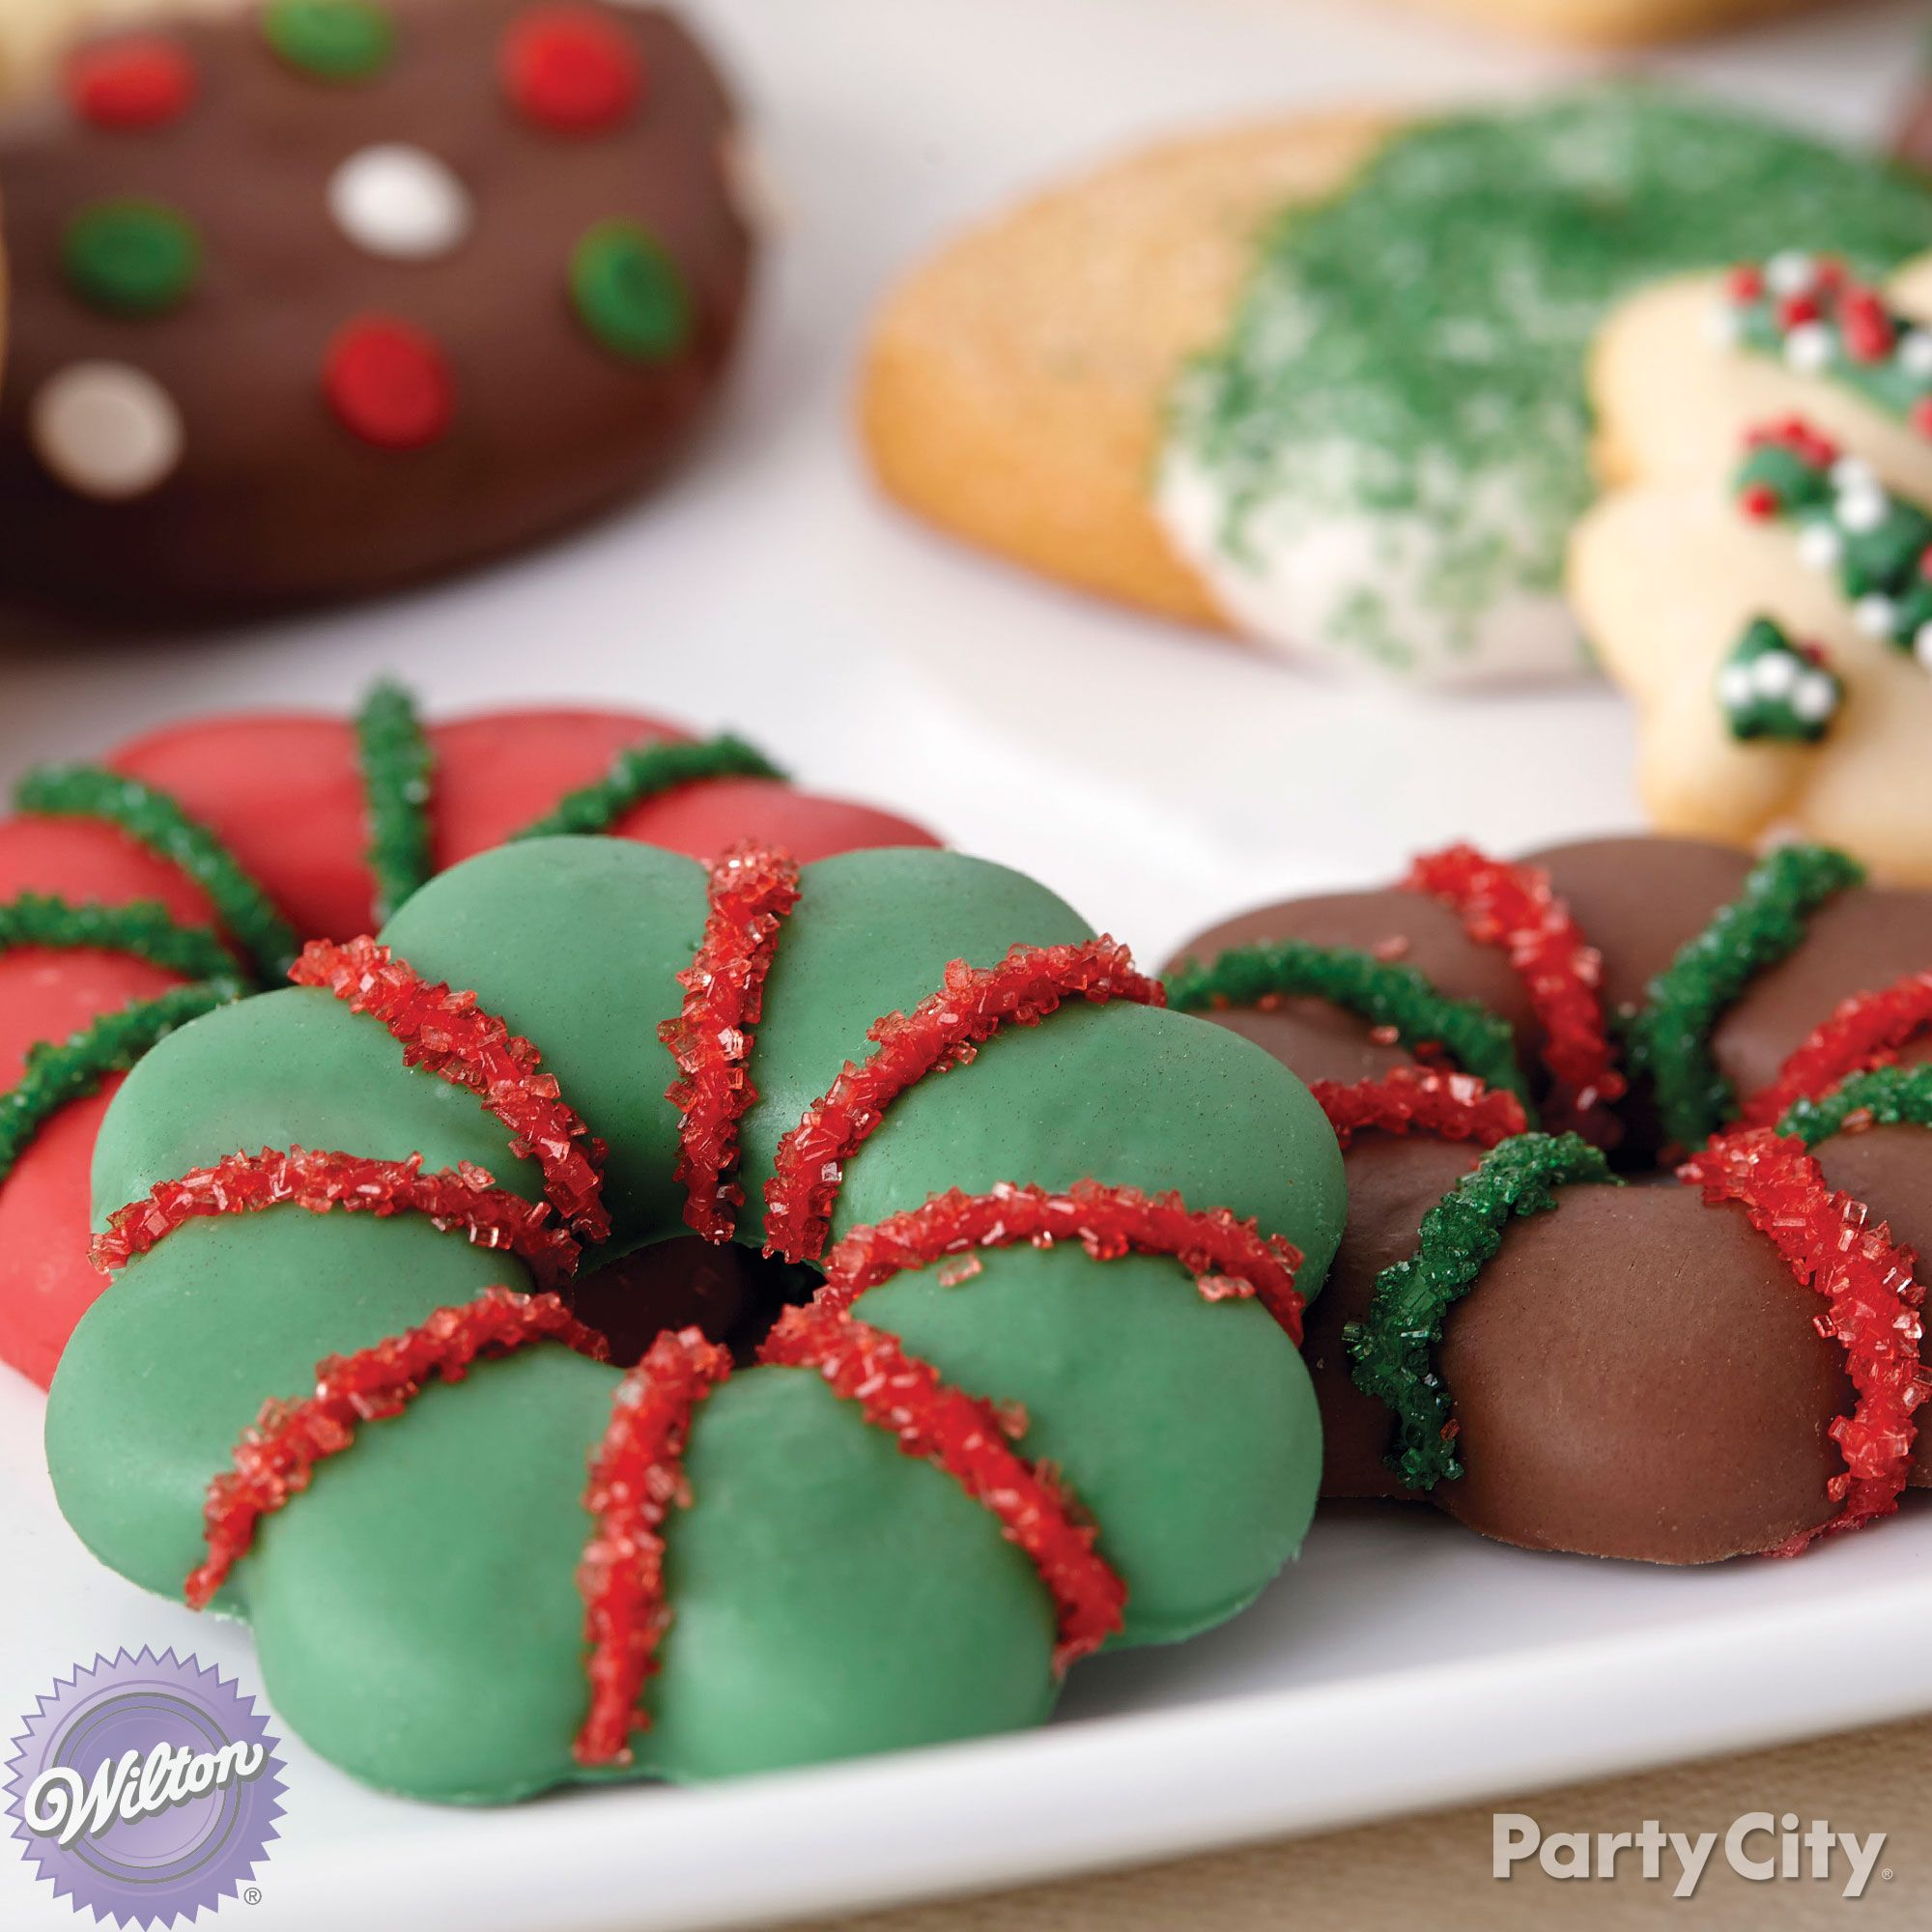 Dunk cookies in red green and cocoa candy melts with ribbons of 12 decadent christmas treats ideas tis the season to have yourself a merry little dip n drizzle candy melts party solutioingenieria Image collections